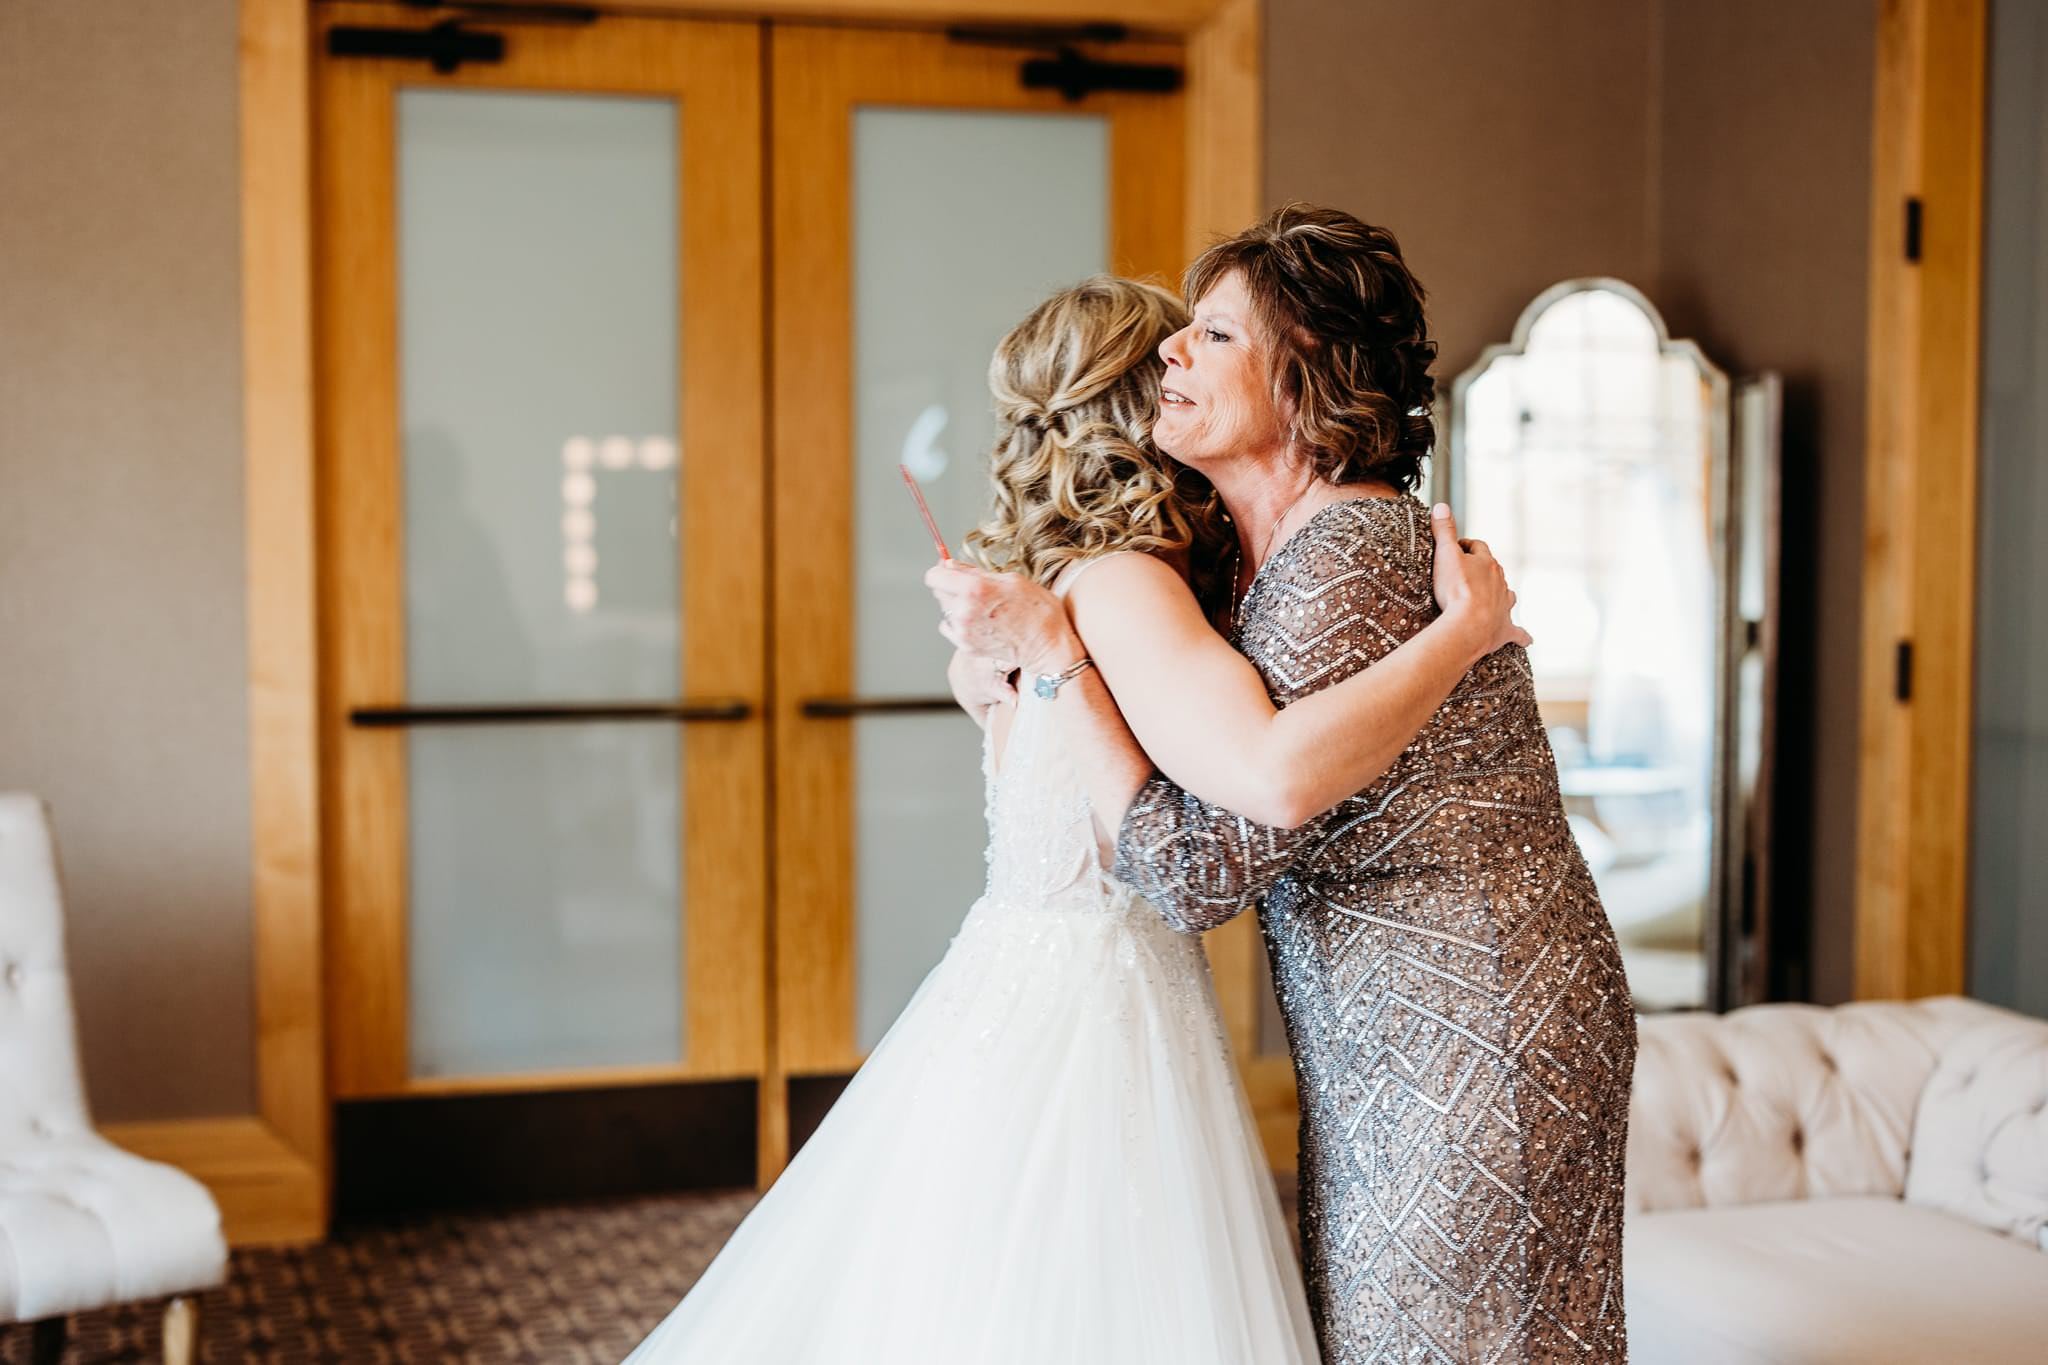 mother of the groom tears up when she sees the bride in her dress before their hazeltine national golf club wedding